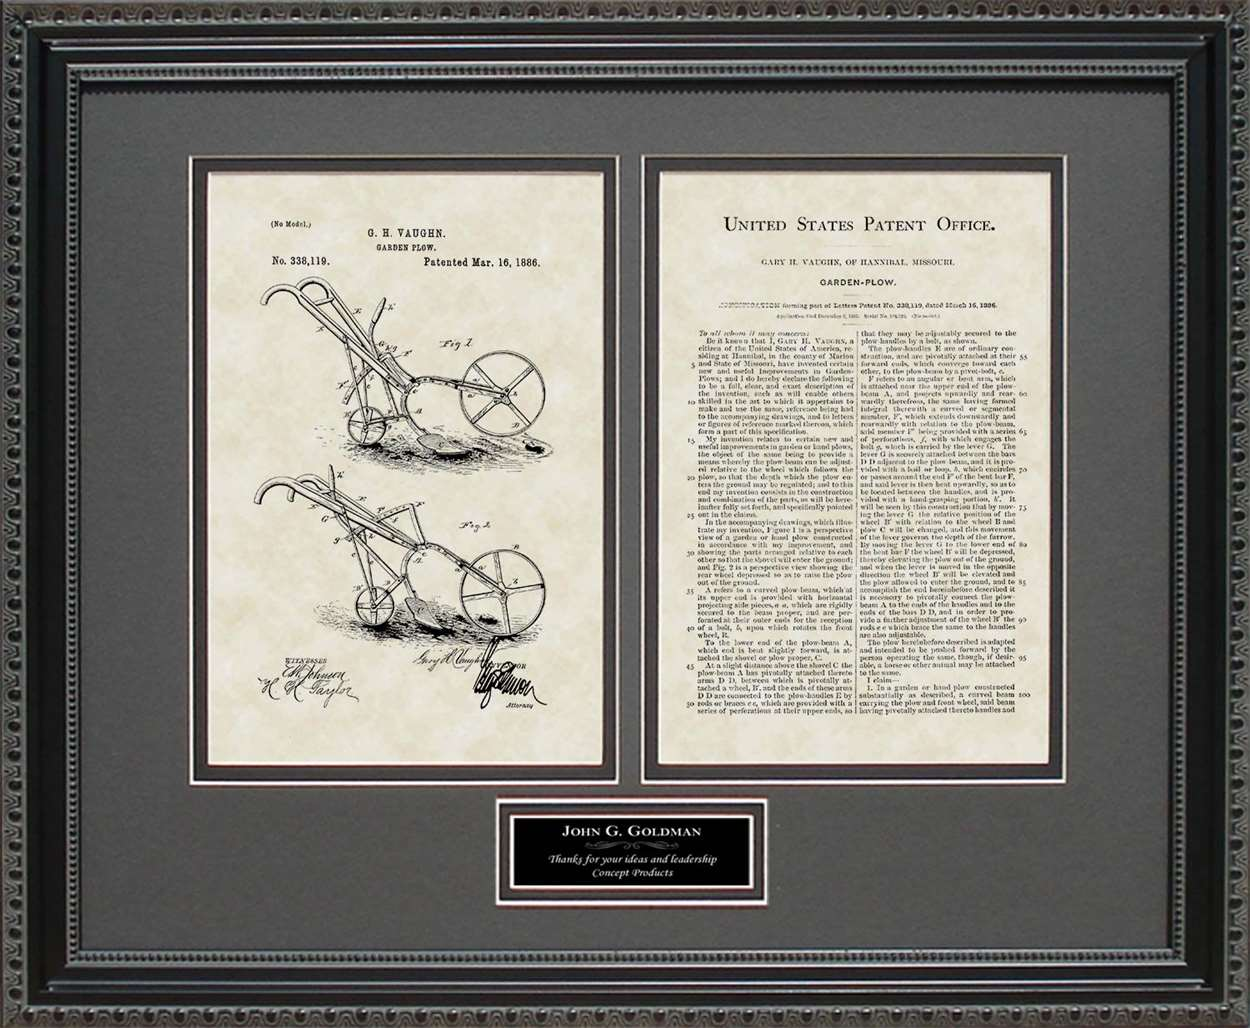 Personalized Garden Plow Patent, Art & Copy, Vaughn, 1886